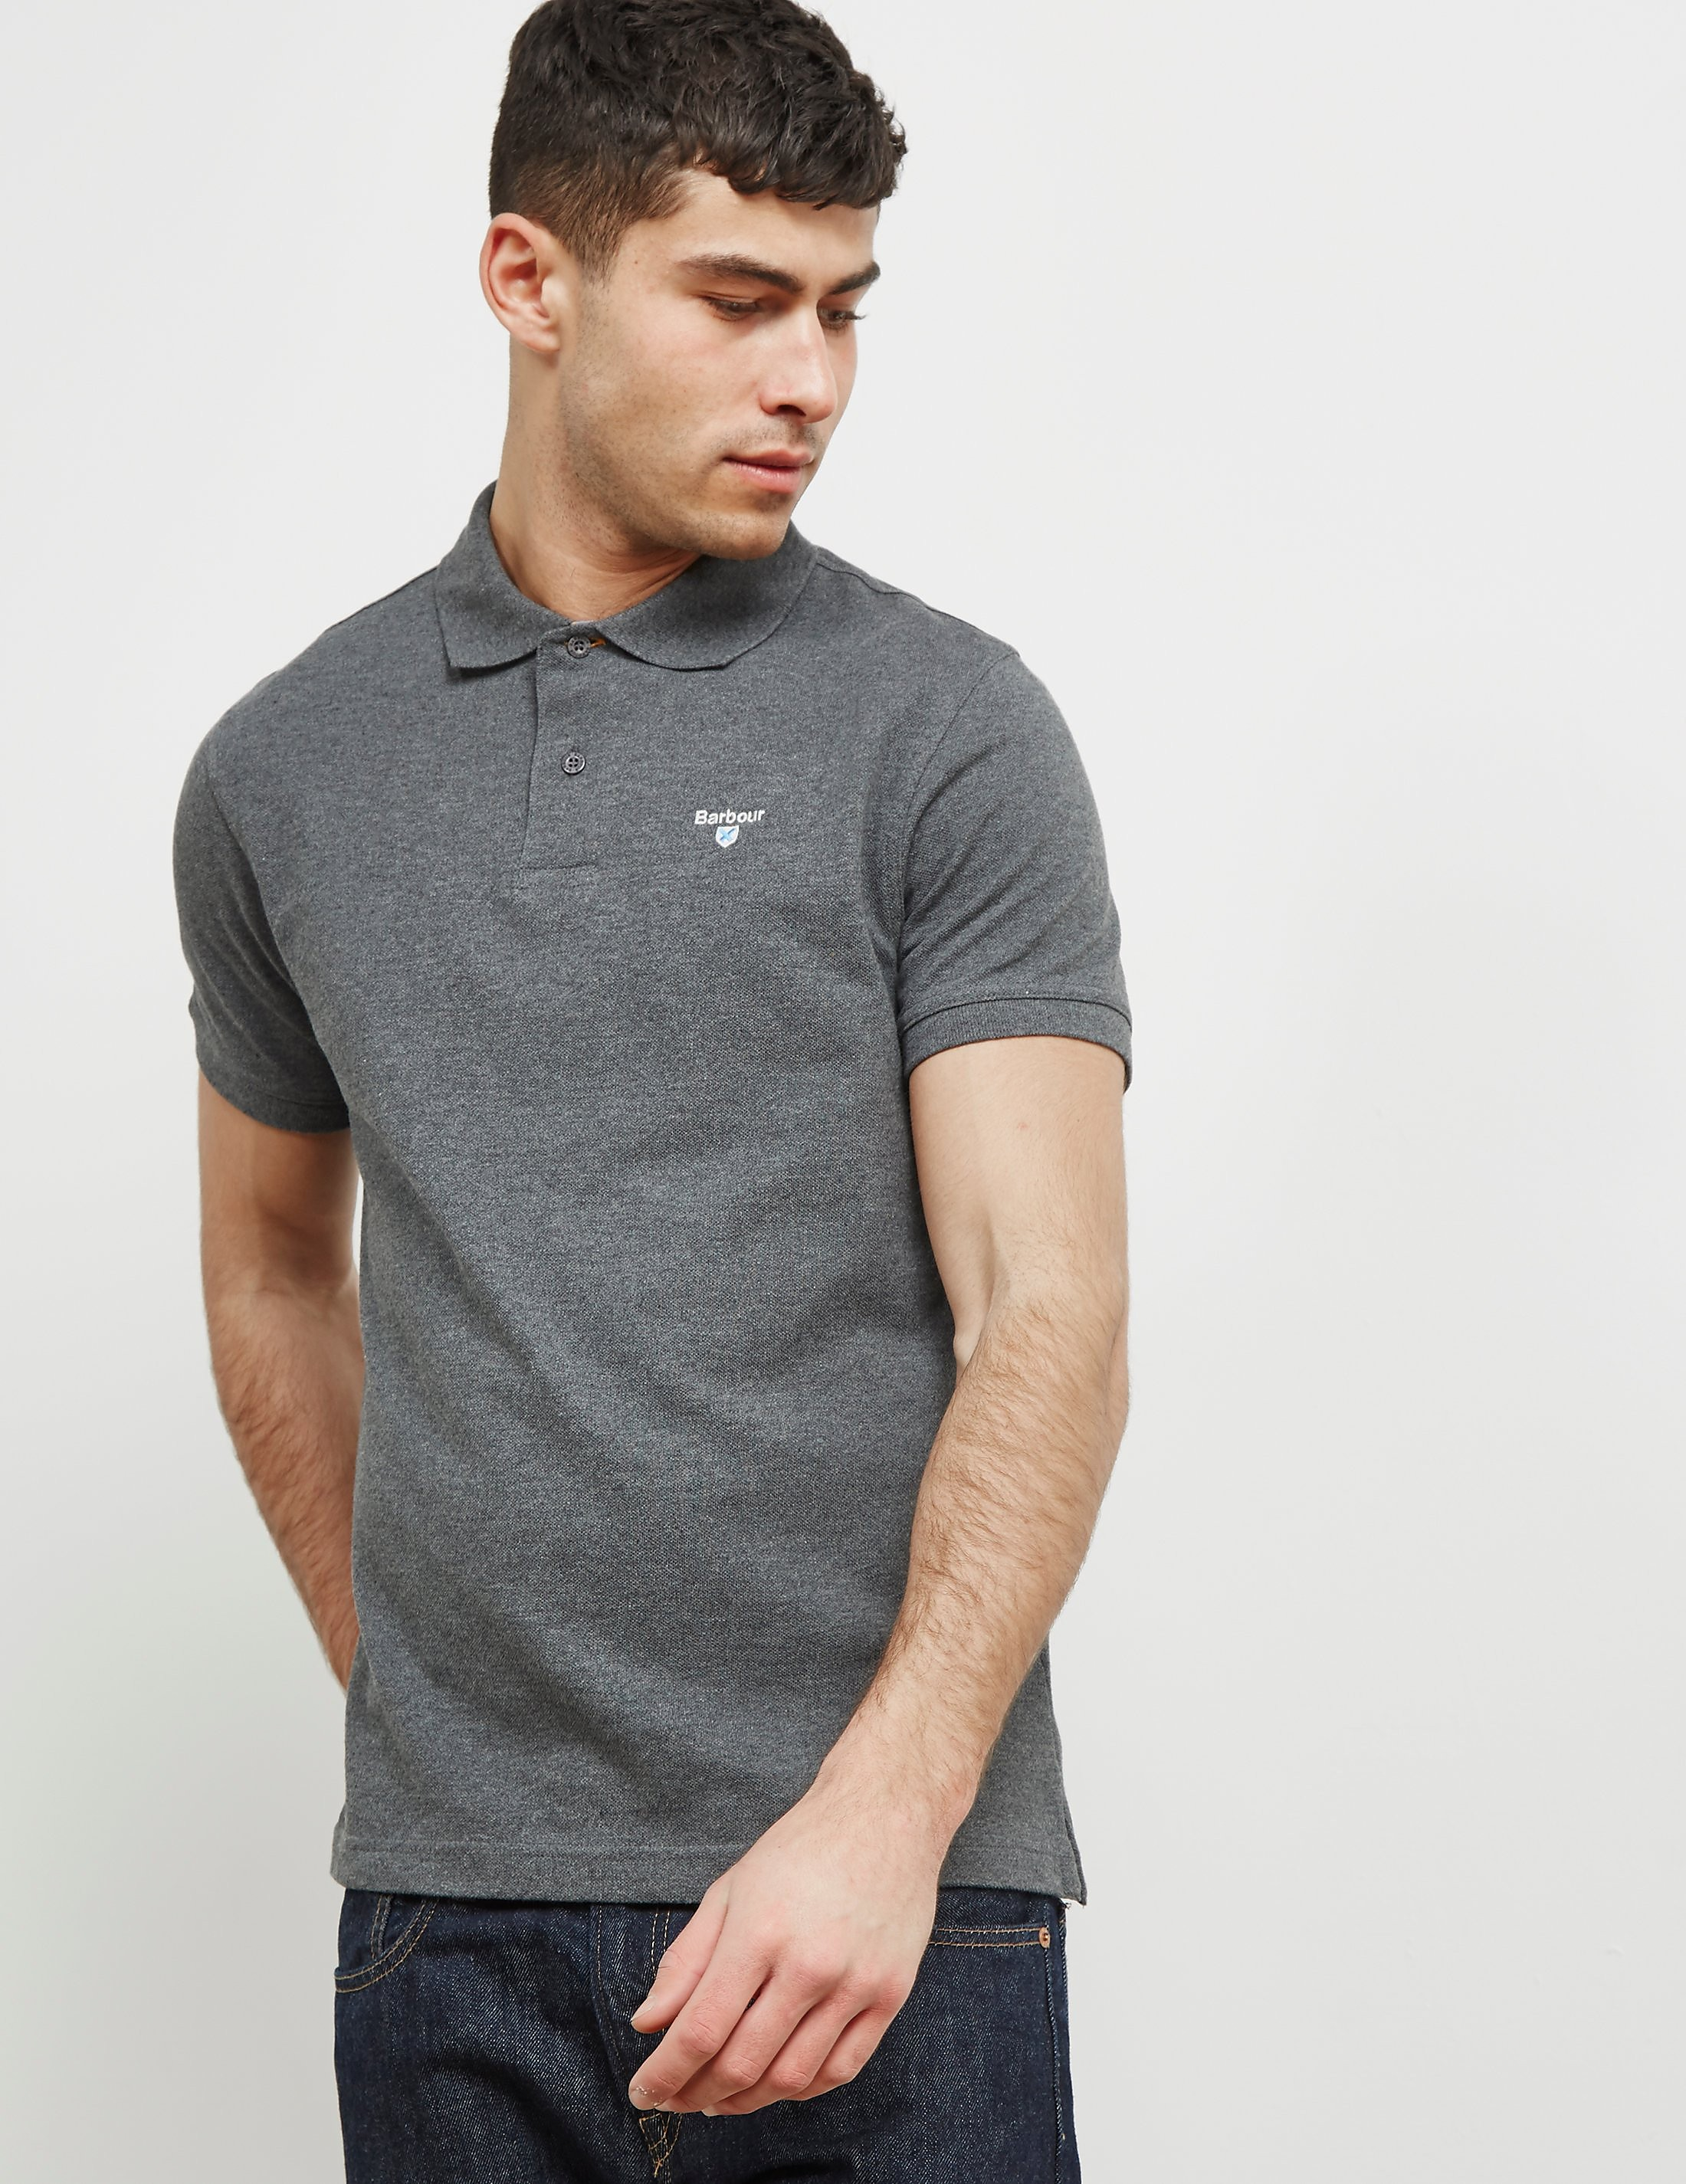 Barbour Pique Short Sleeve Polo Shirt